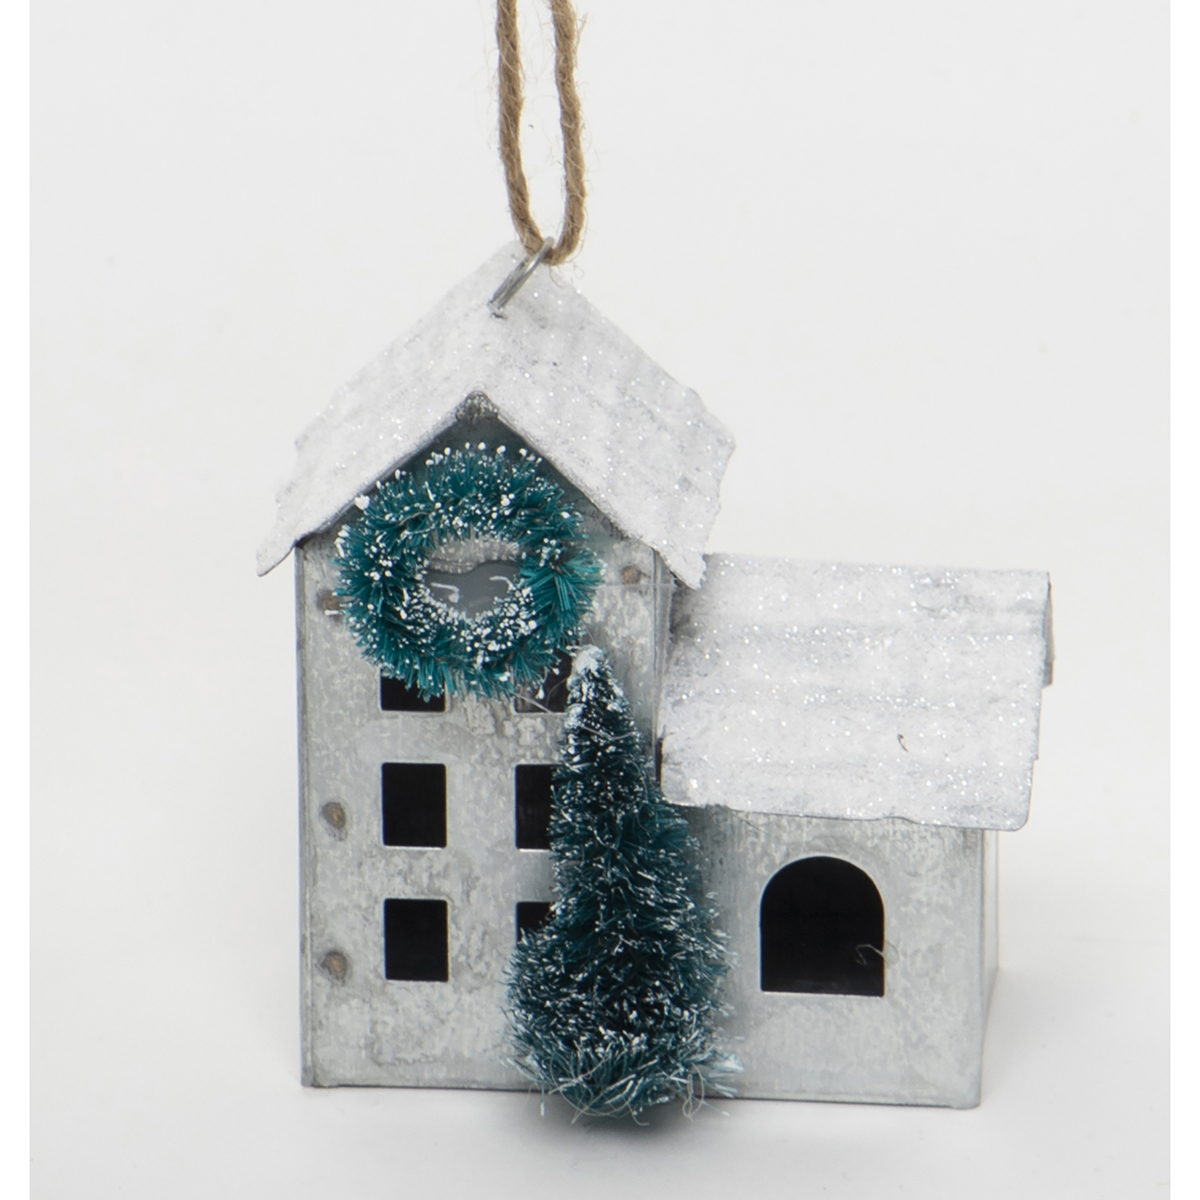 METAL HOUSE ORNAMENT WITH WHITE GLITTER